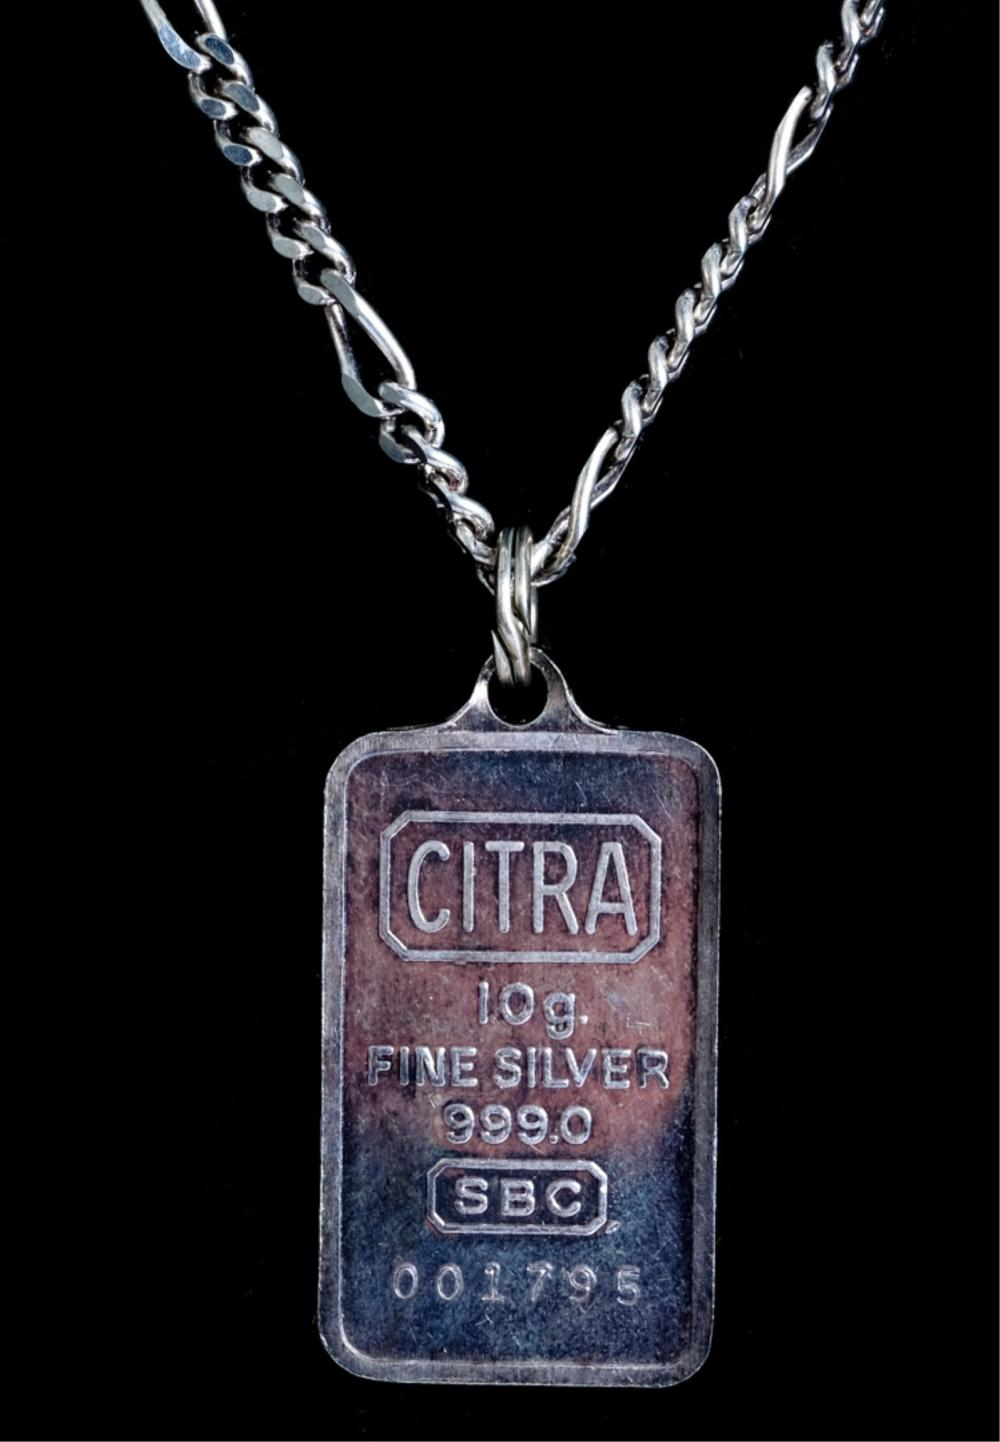 CITRA 10G Fine Silver 999.0 Ingot on Necklace